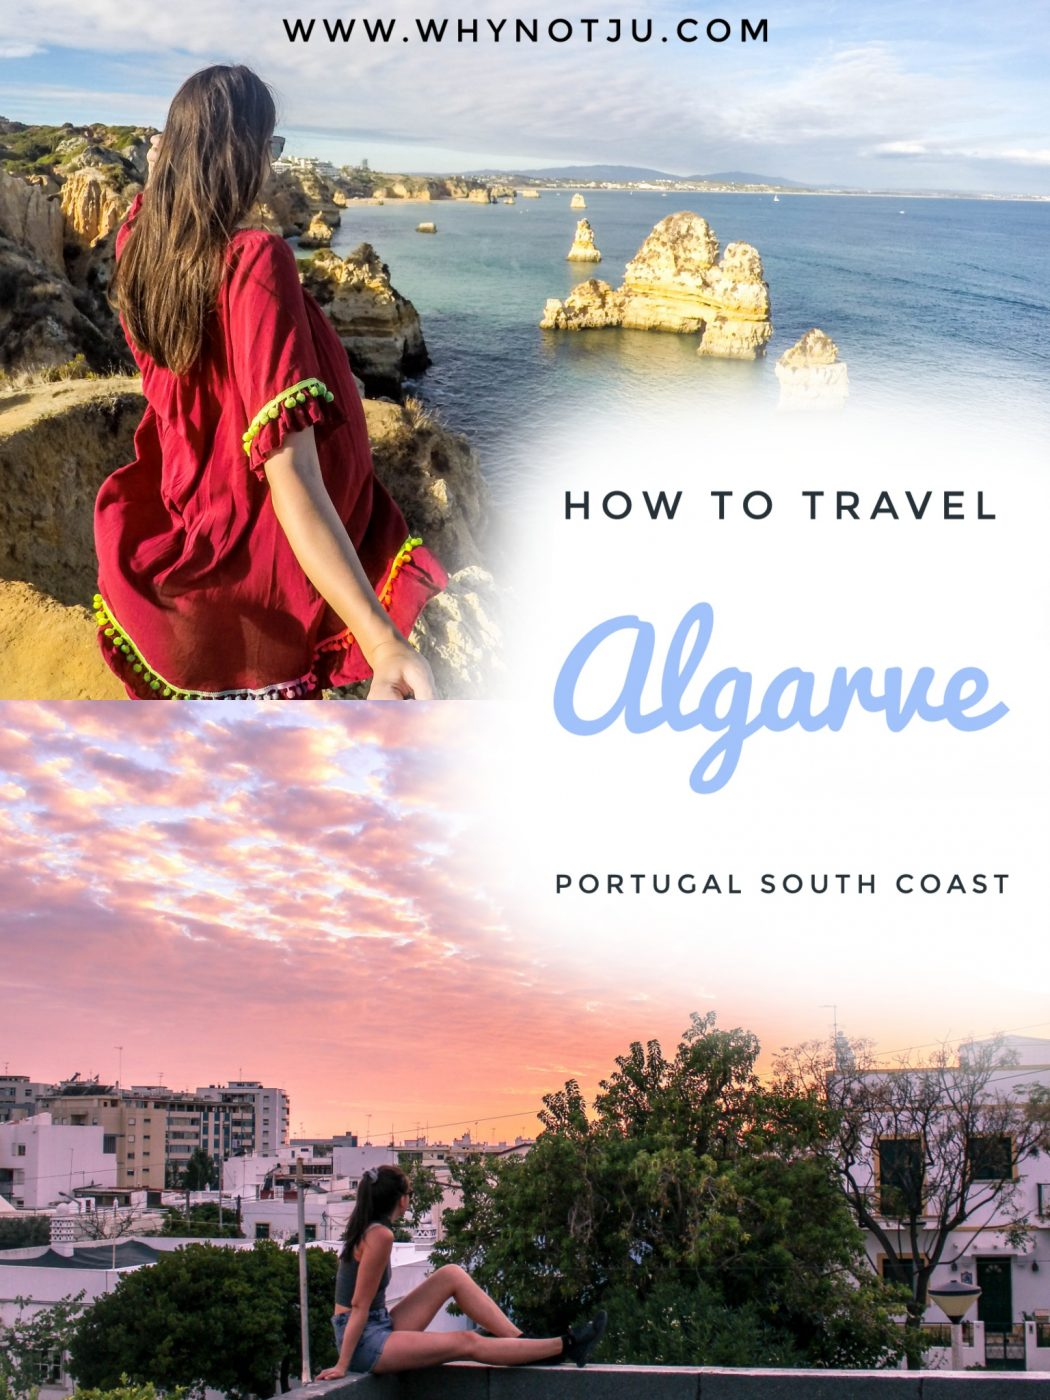 Ultimate guide & 10 day Algarve itinerary to backpack the south of portugal. How to get around on a budget to Faro, Albufeira & Lagos... #portugal #travel #guide #backpacking #budget #itinerary #albufeira #faro #lagos #algarve